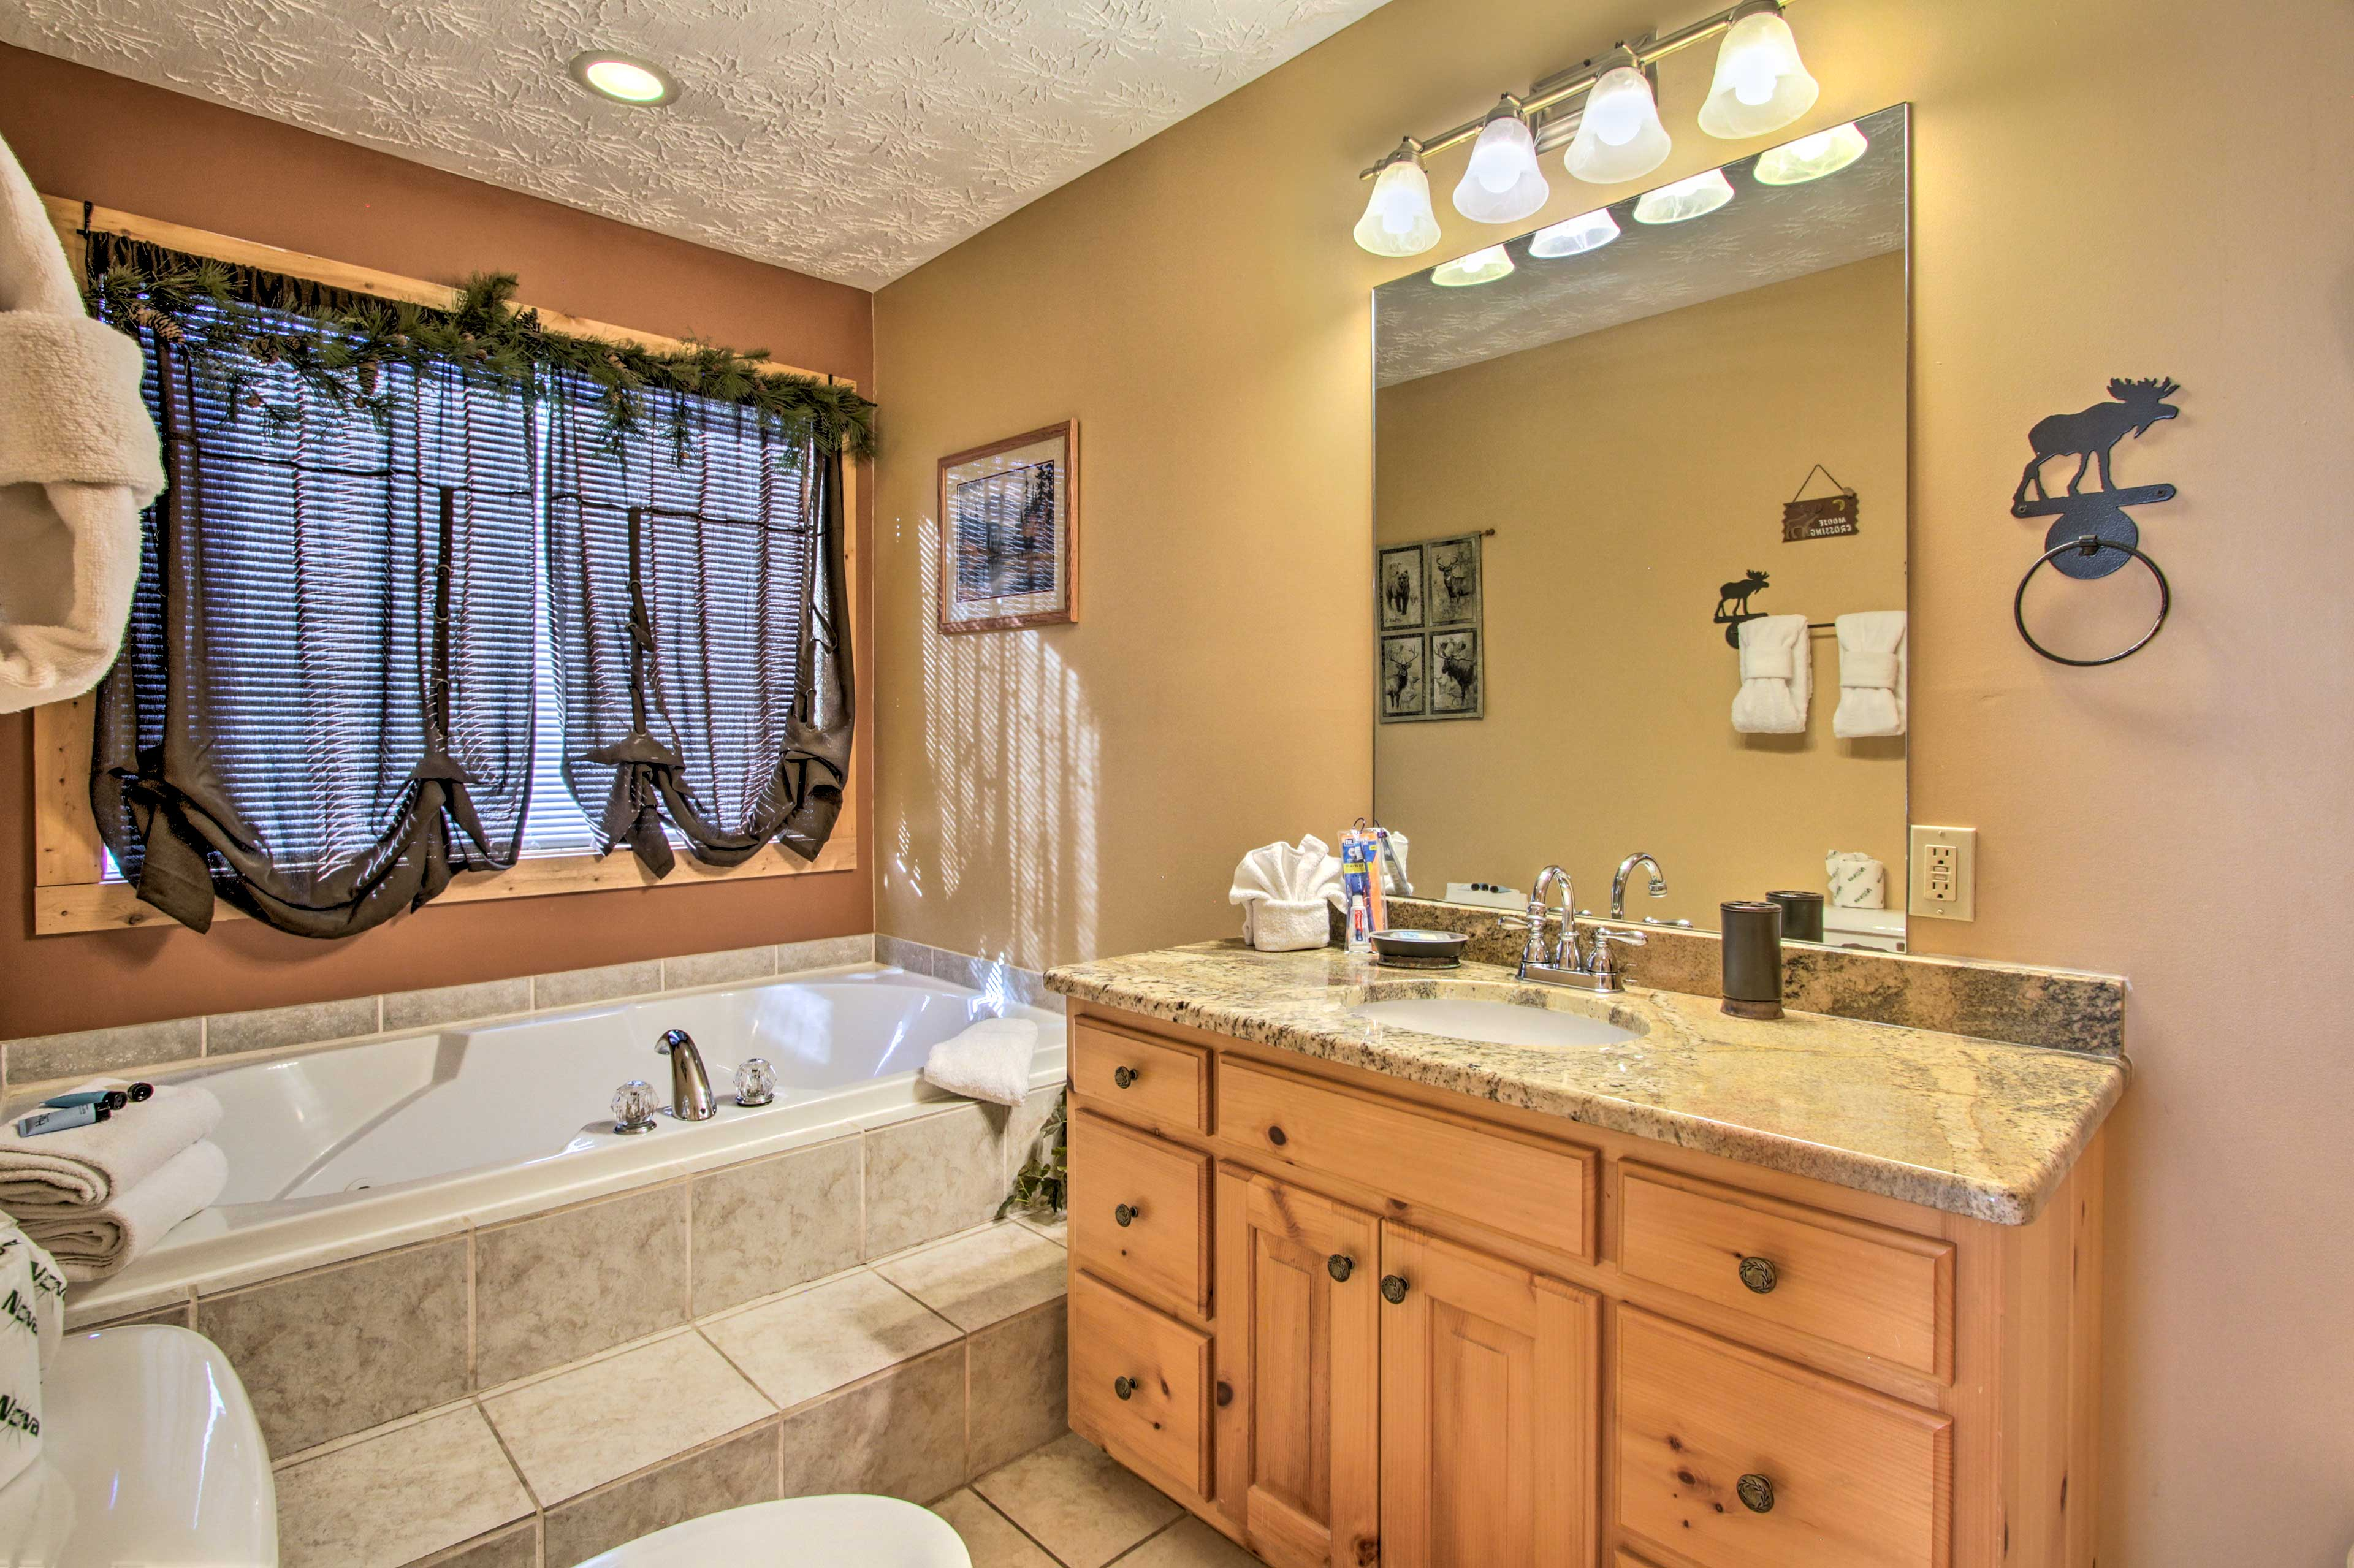 Enjoy a soak in the jetted garden tub found in 2 of the 4 full bathrooms.